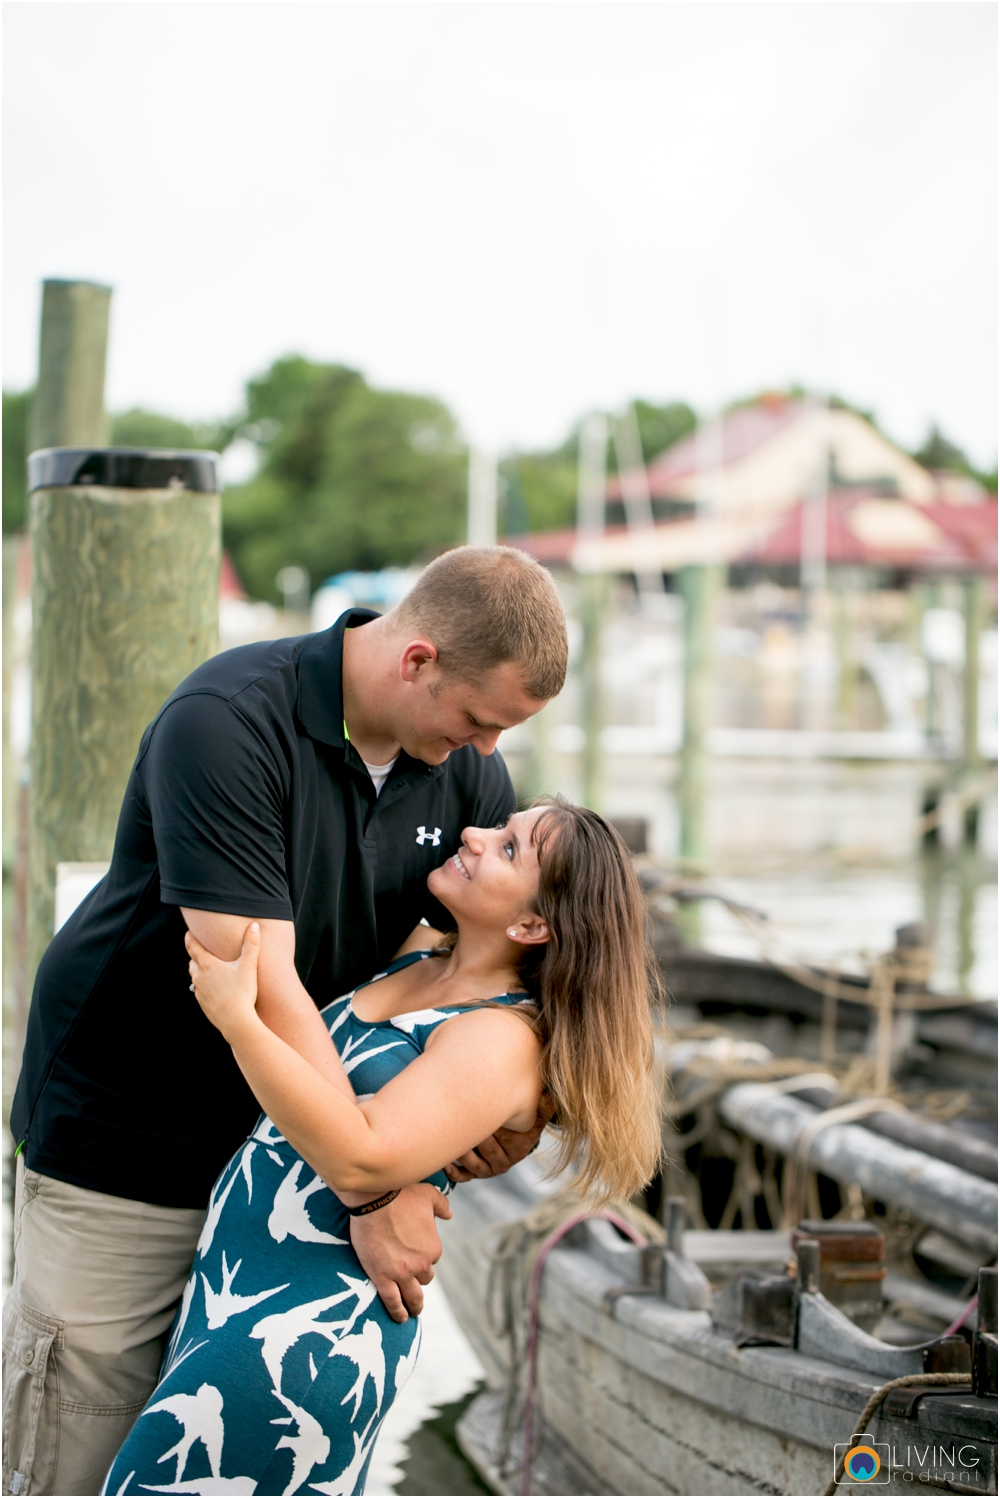 St.-Michaels-Engagement-Wedding-Photography-Living-Radiant-Photography-on-the-water-photos-Megan-Kevin_0034.jpg